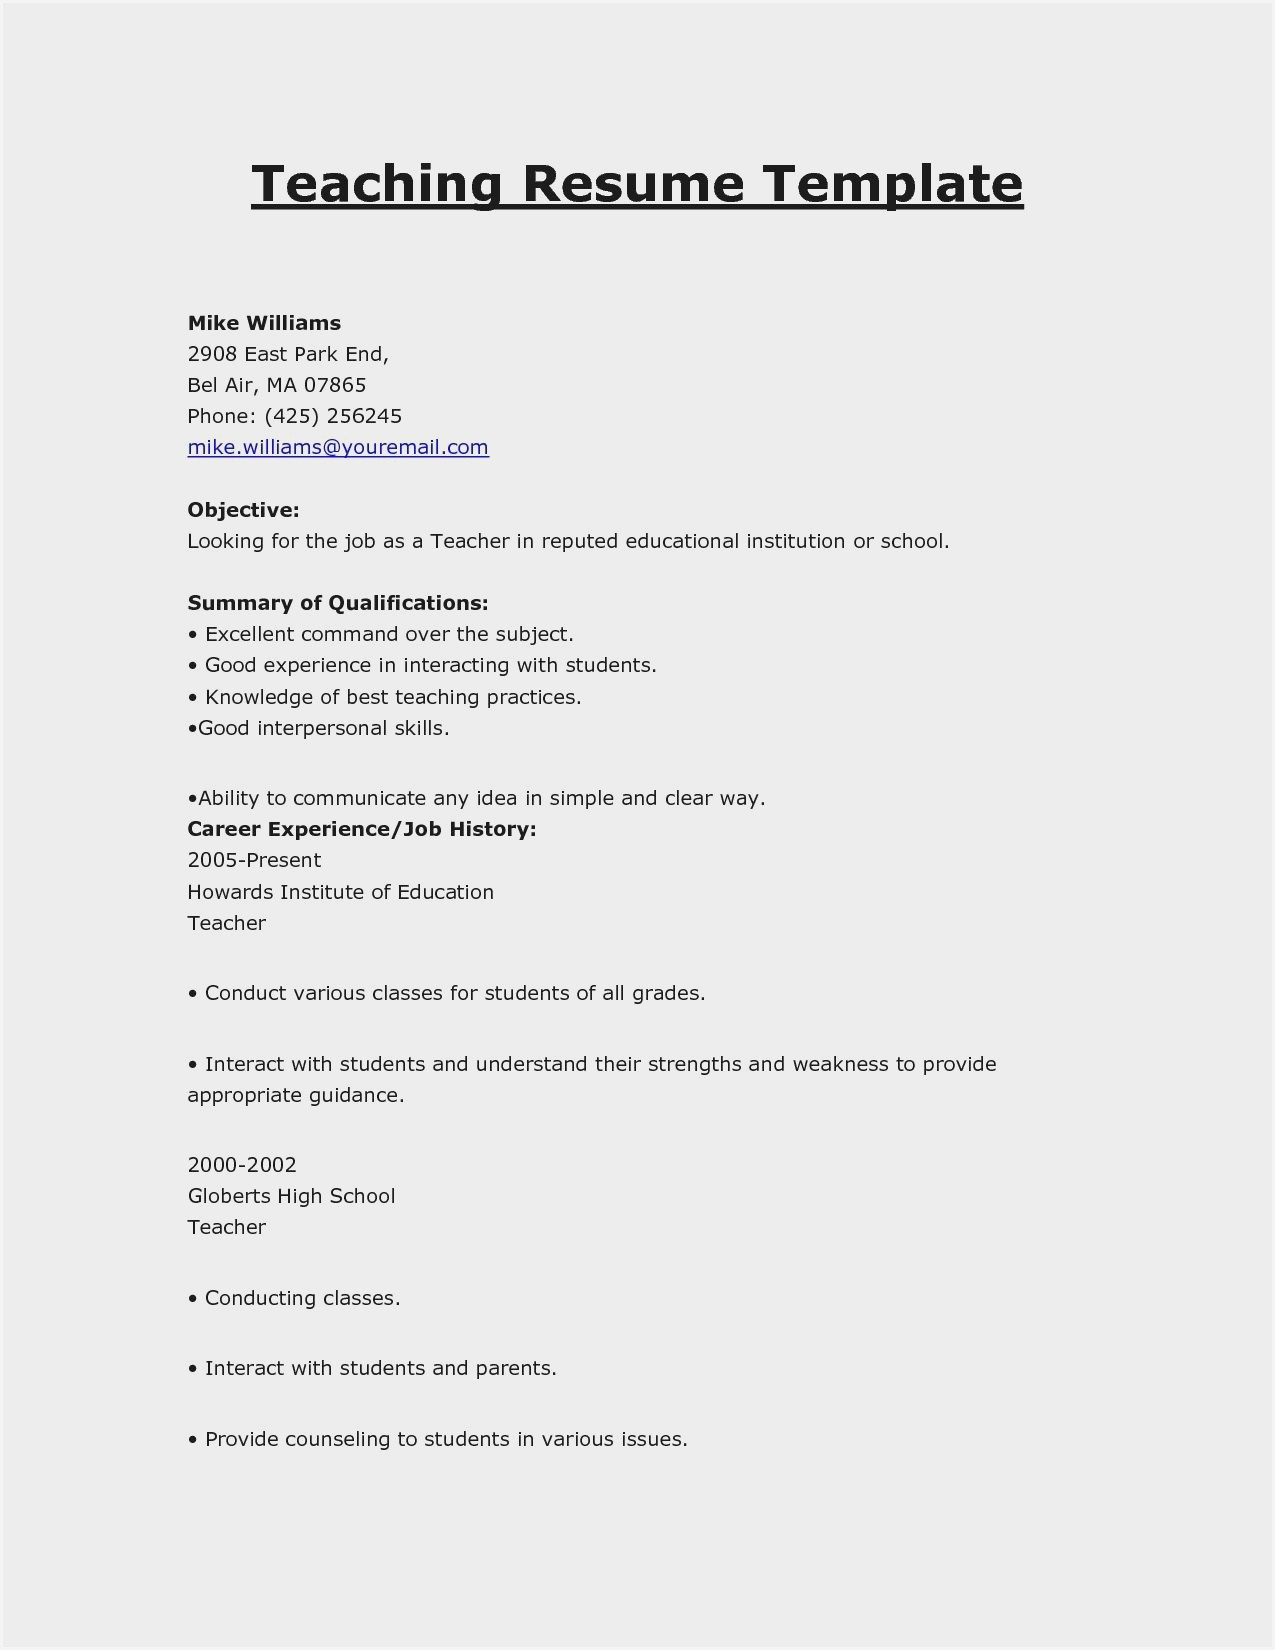 free sample resume for teachers pdf without experience completion engineer blank Resume Sample Resume For Teachers Without Experience